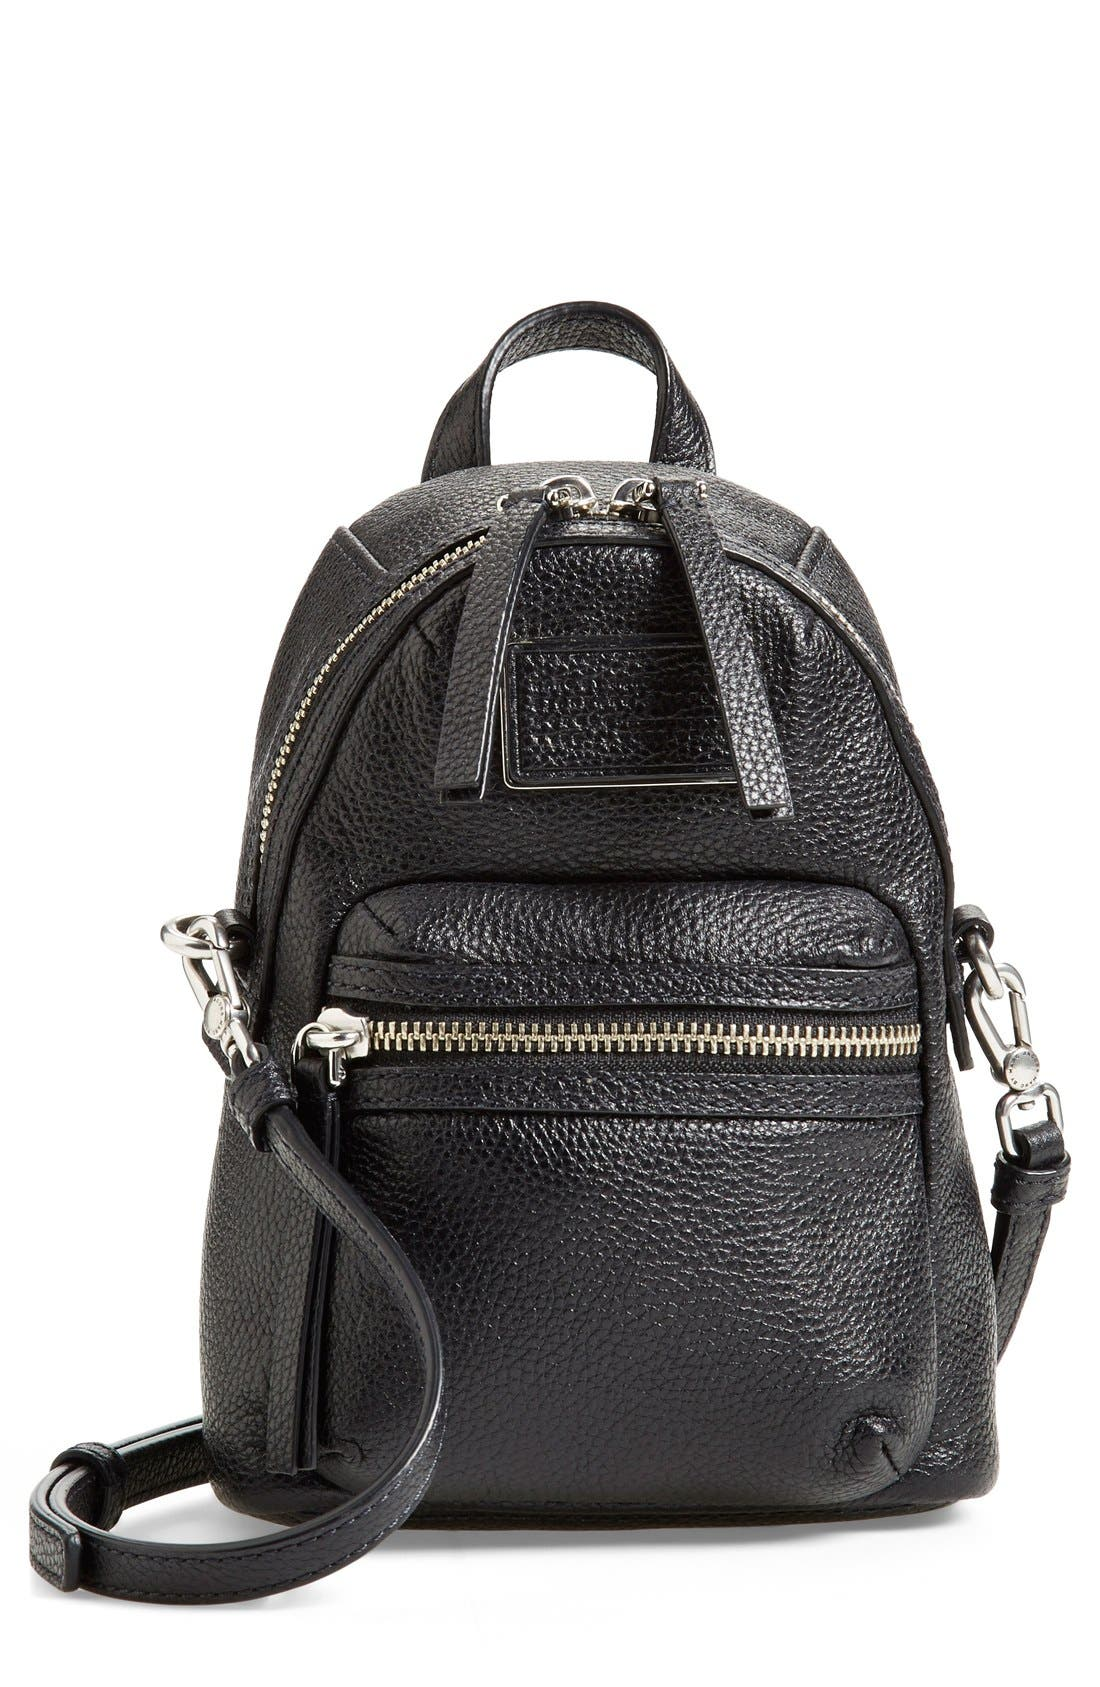 Alternate Image 1 Selected - MARC BY MARC JACOBS 'Domo' Crossbody Bag